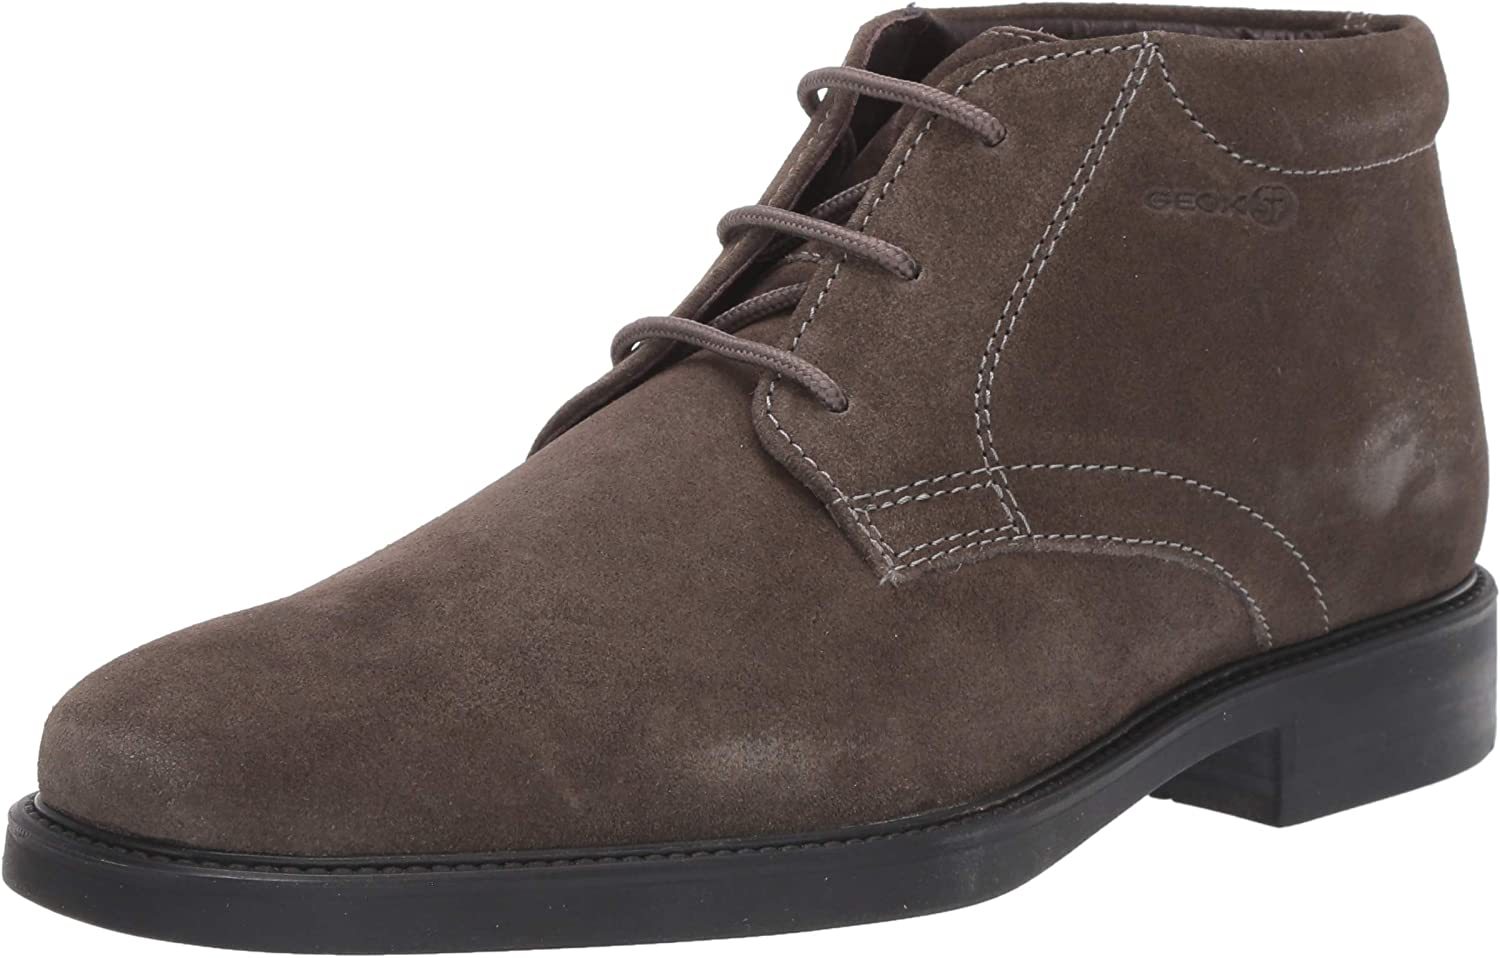 GEOX Brandolf Men's Lace-Up Shoes Brown